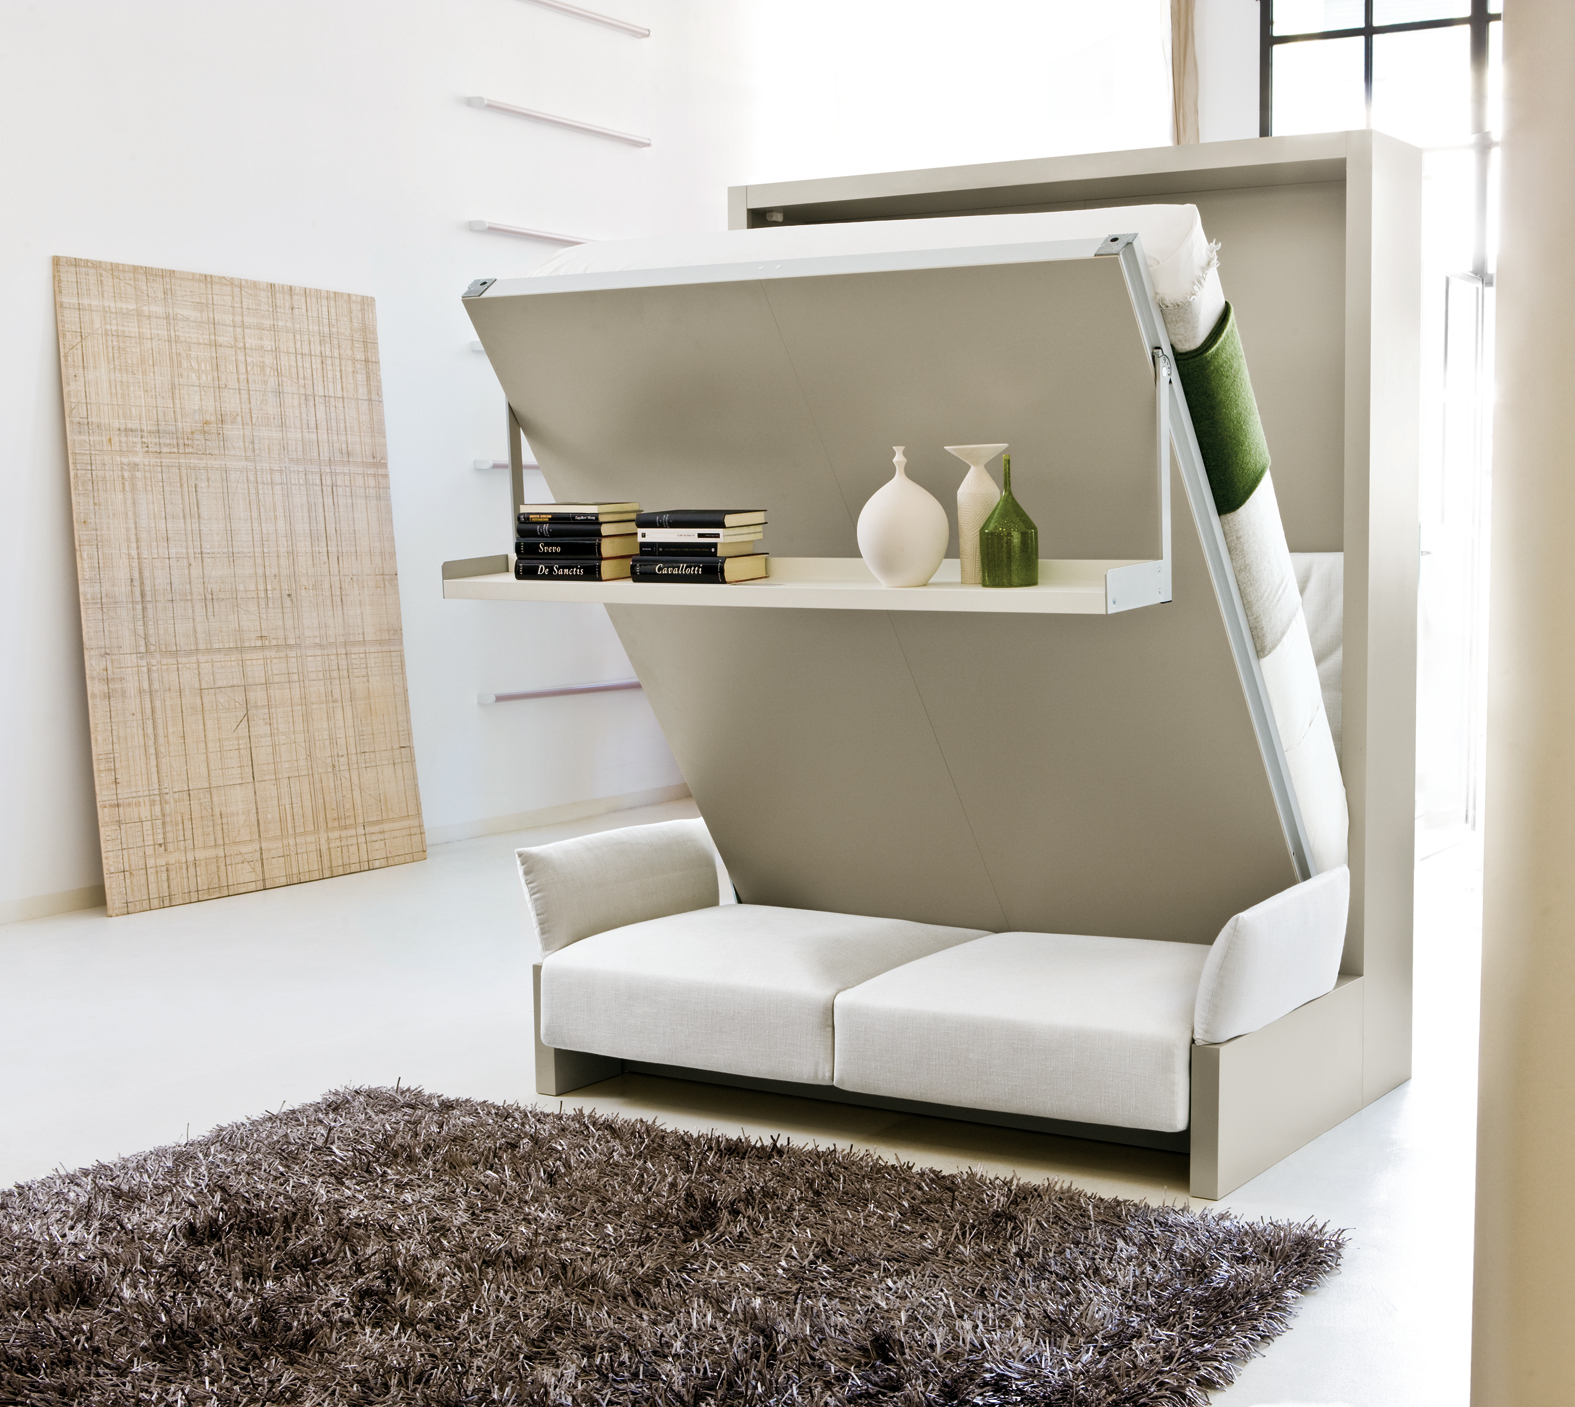 Nuovoliola wall bed clei wall beds london free for Italian wall bed system